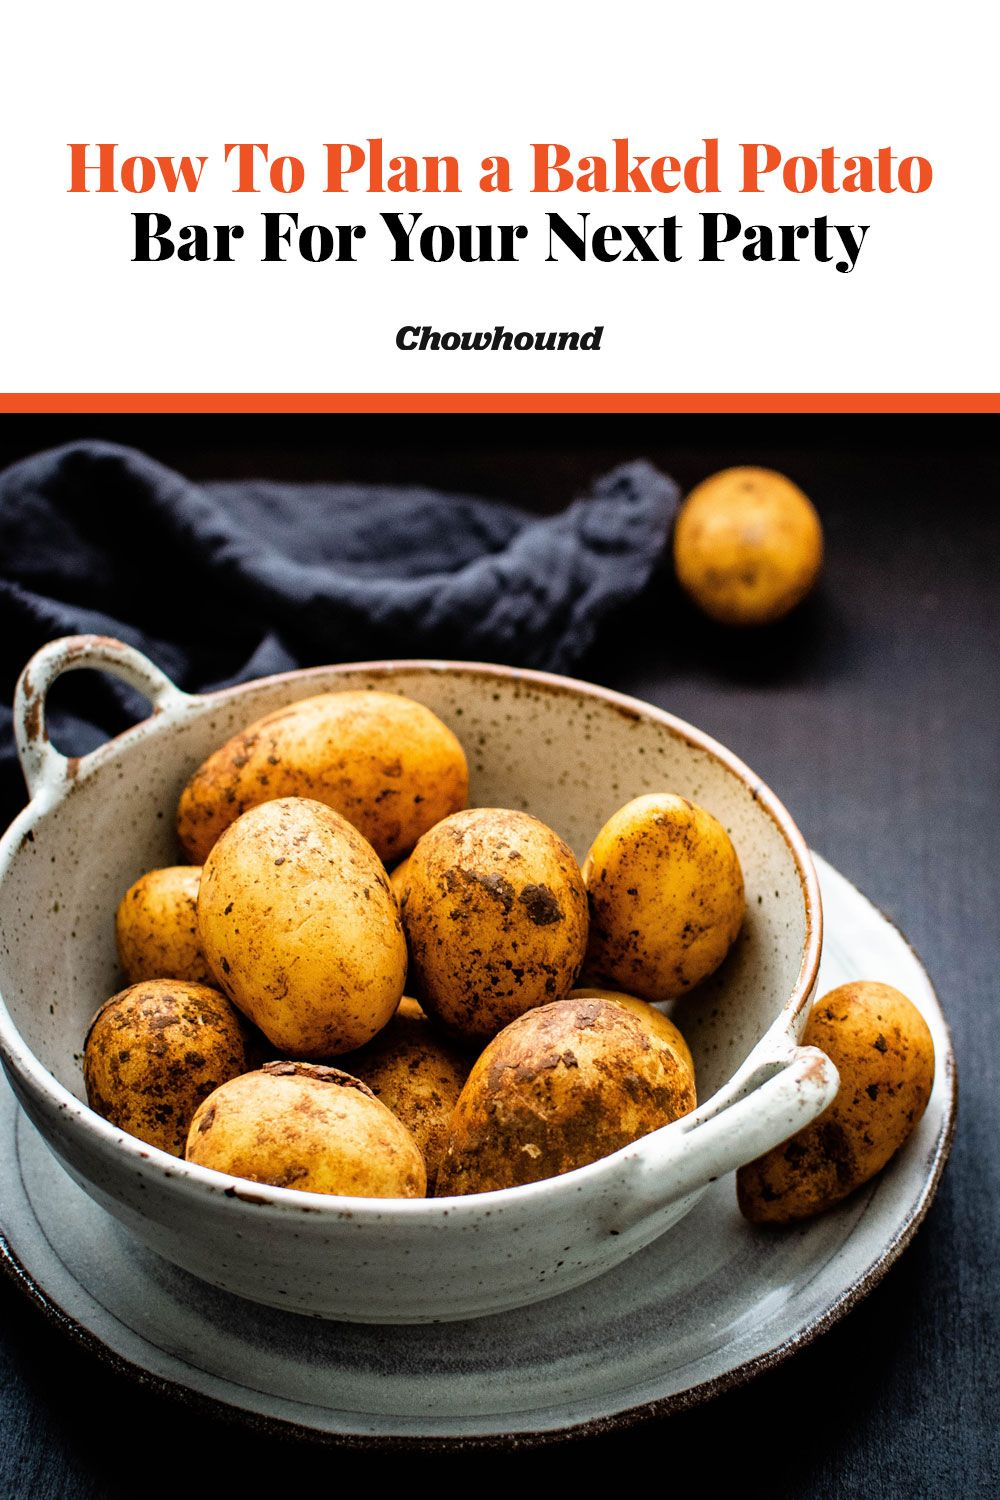 How To Plan a Baked Potato Bar For Your Next Party | Baked ...